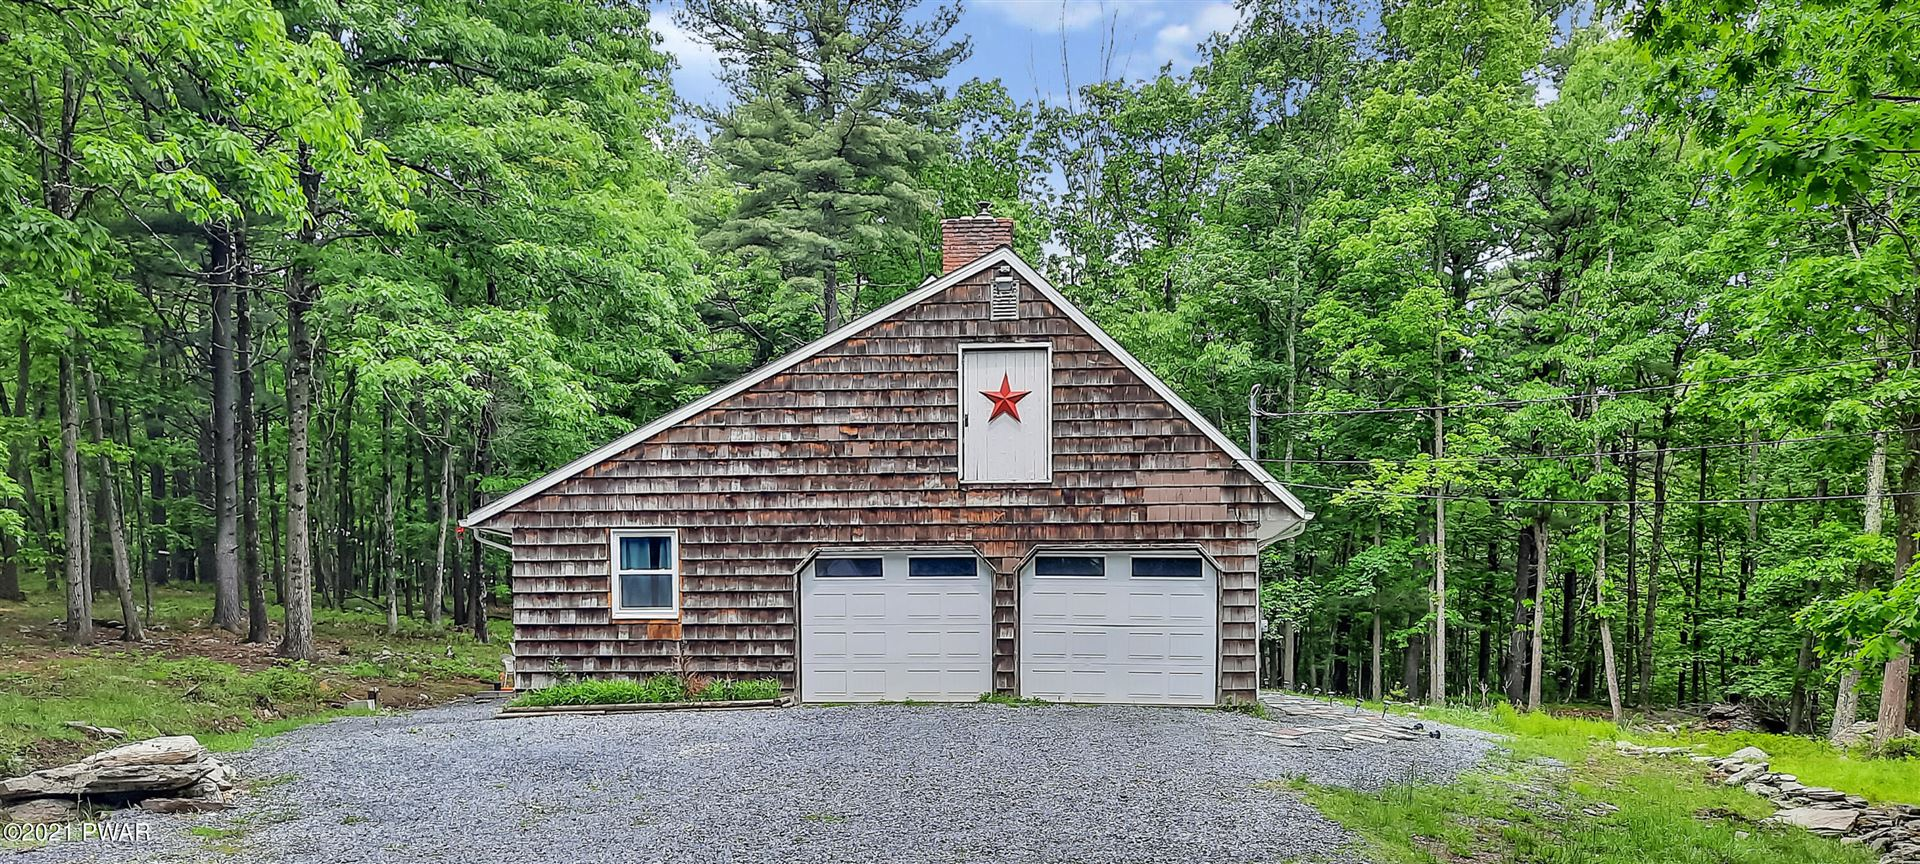 Photo of 19 Ruffed Grouse Dr, Lakeville, PA 18438 (MLS # 21-2002)